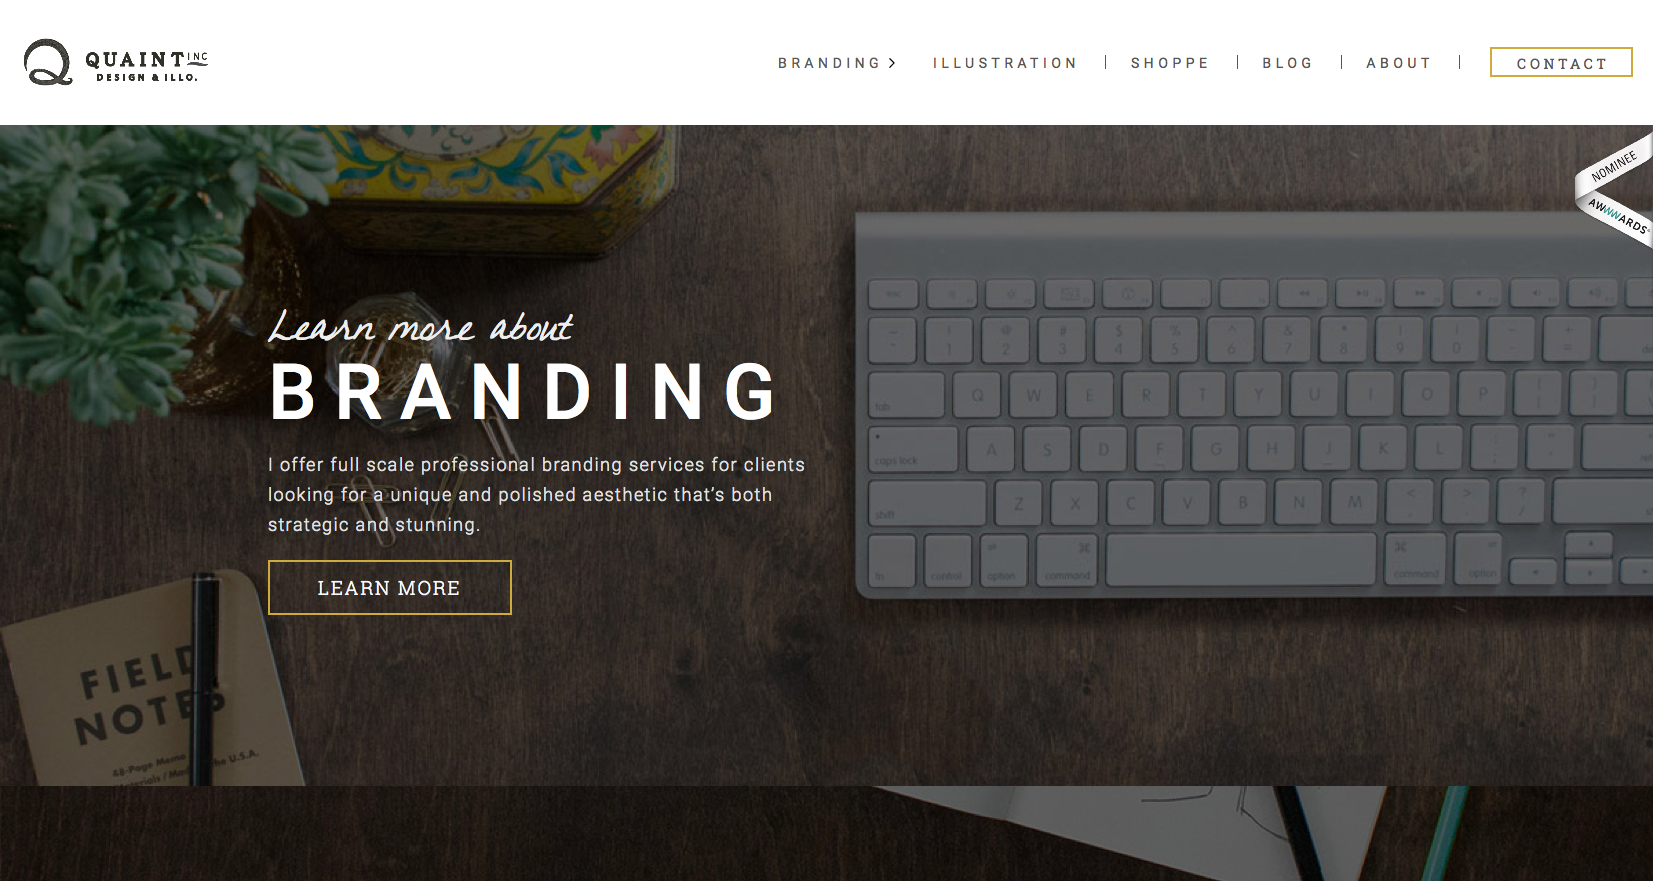 Quaint Inc landing page